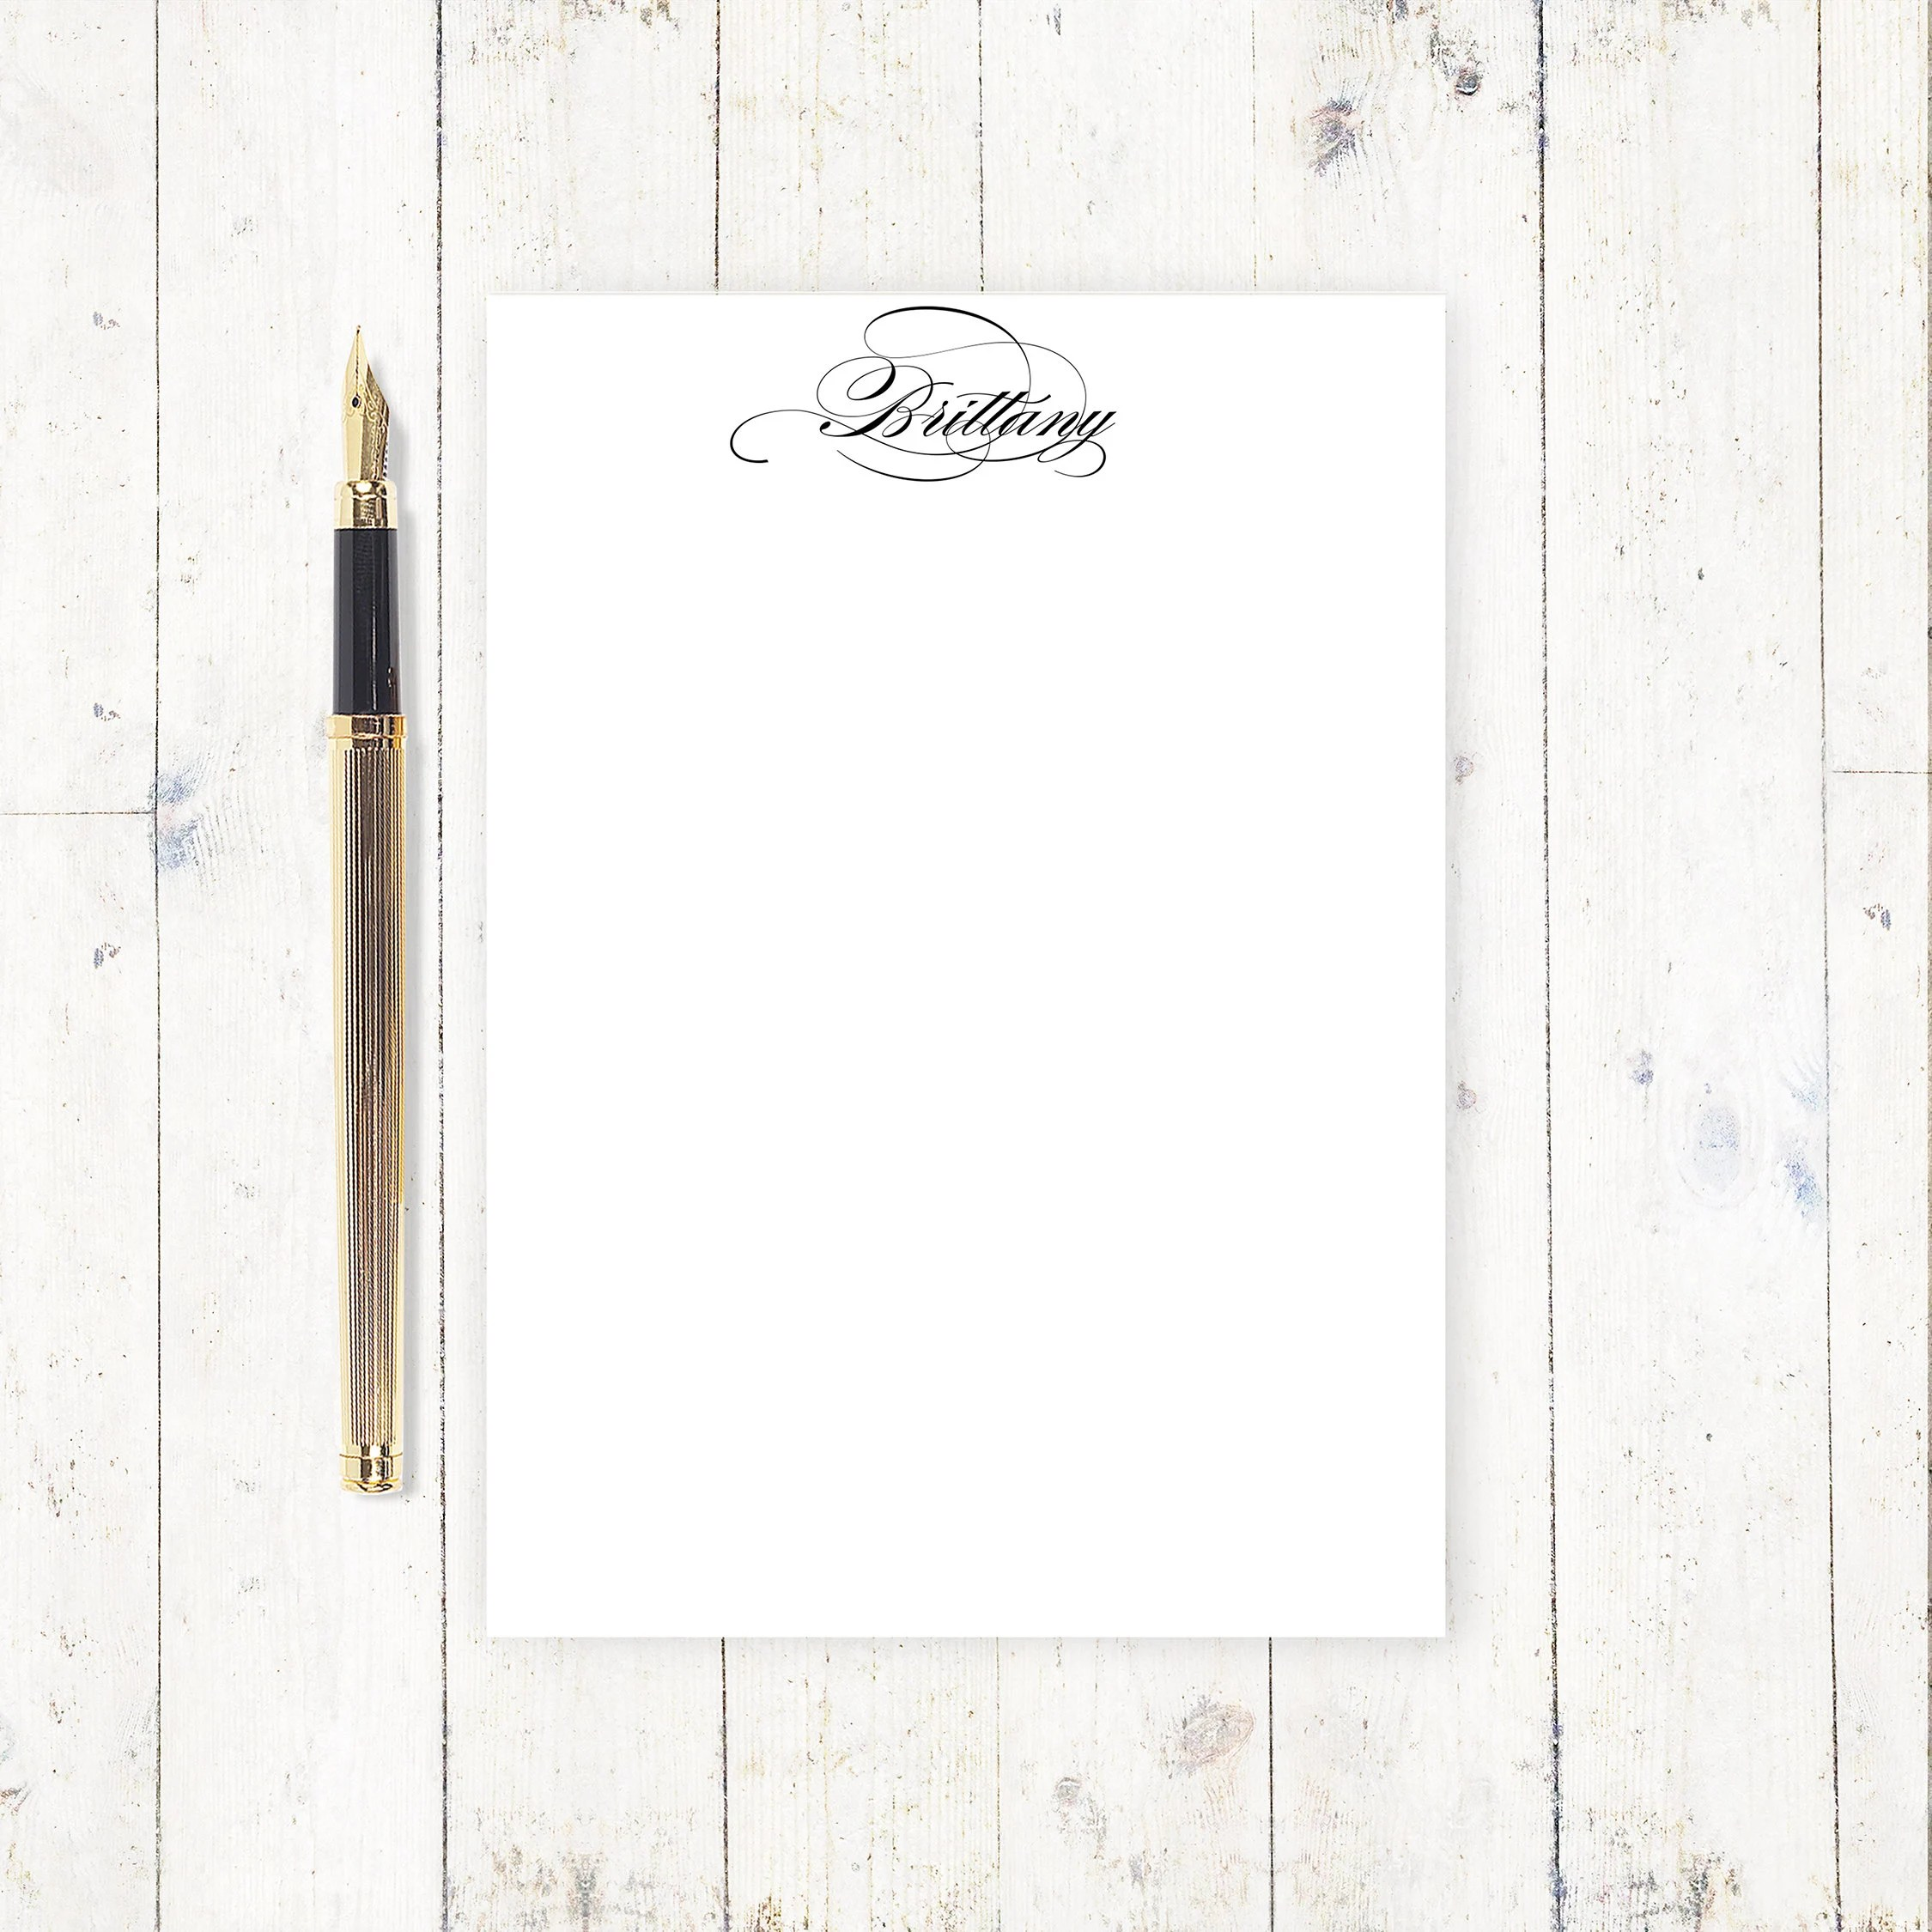 personalized notePAD FANCY CALLIGRAPHY NAME stationery Etsy